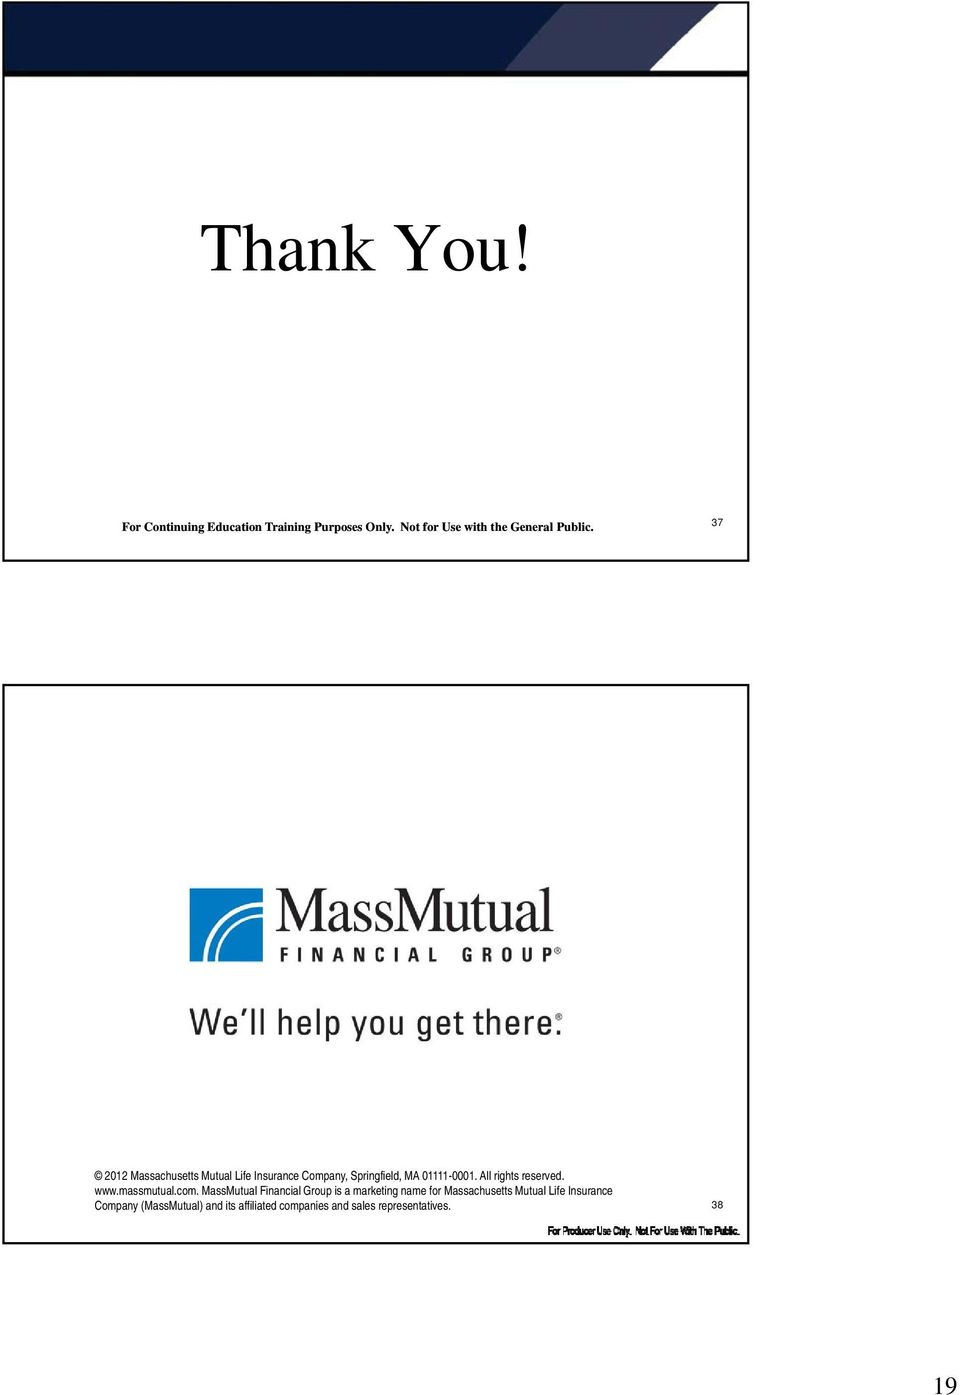 MassMutual Financial Group is a marketing name for Massachusetts Mutual Life Insurance Company